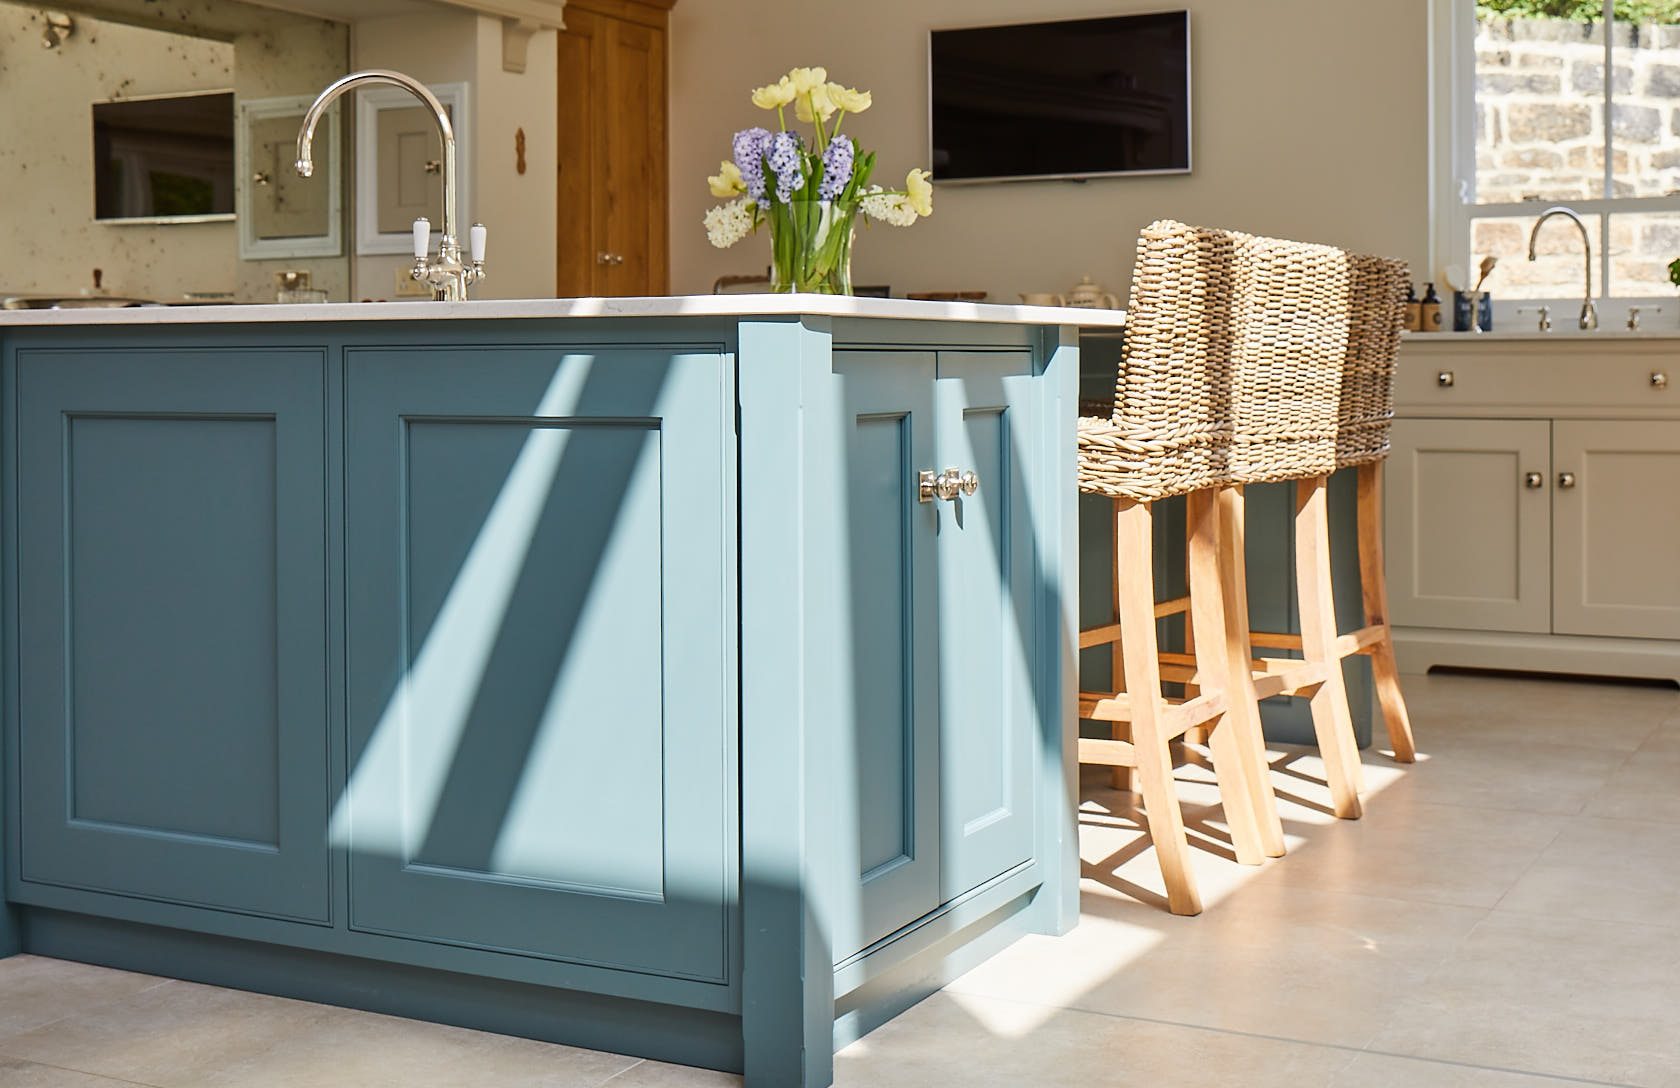 Sun shines on painted green kitchen island with wicker bar stools pushed under worktop